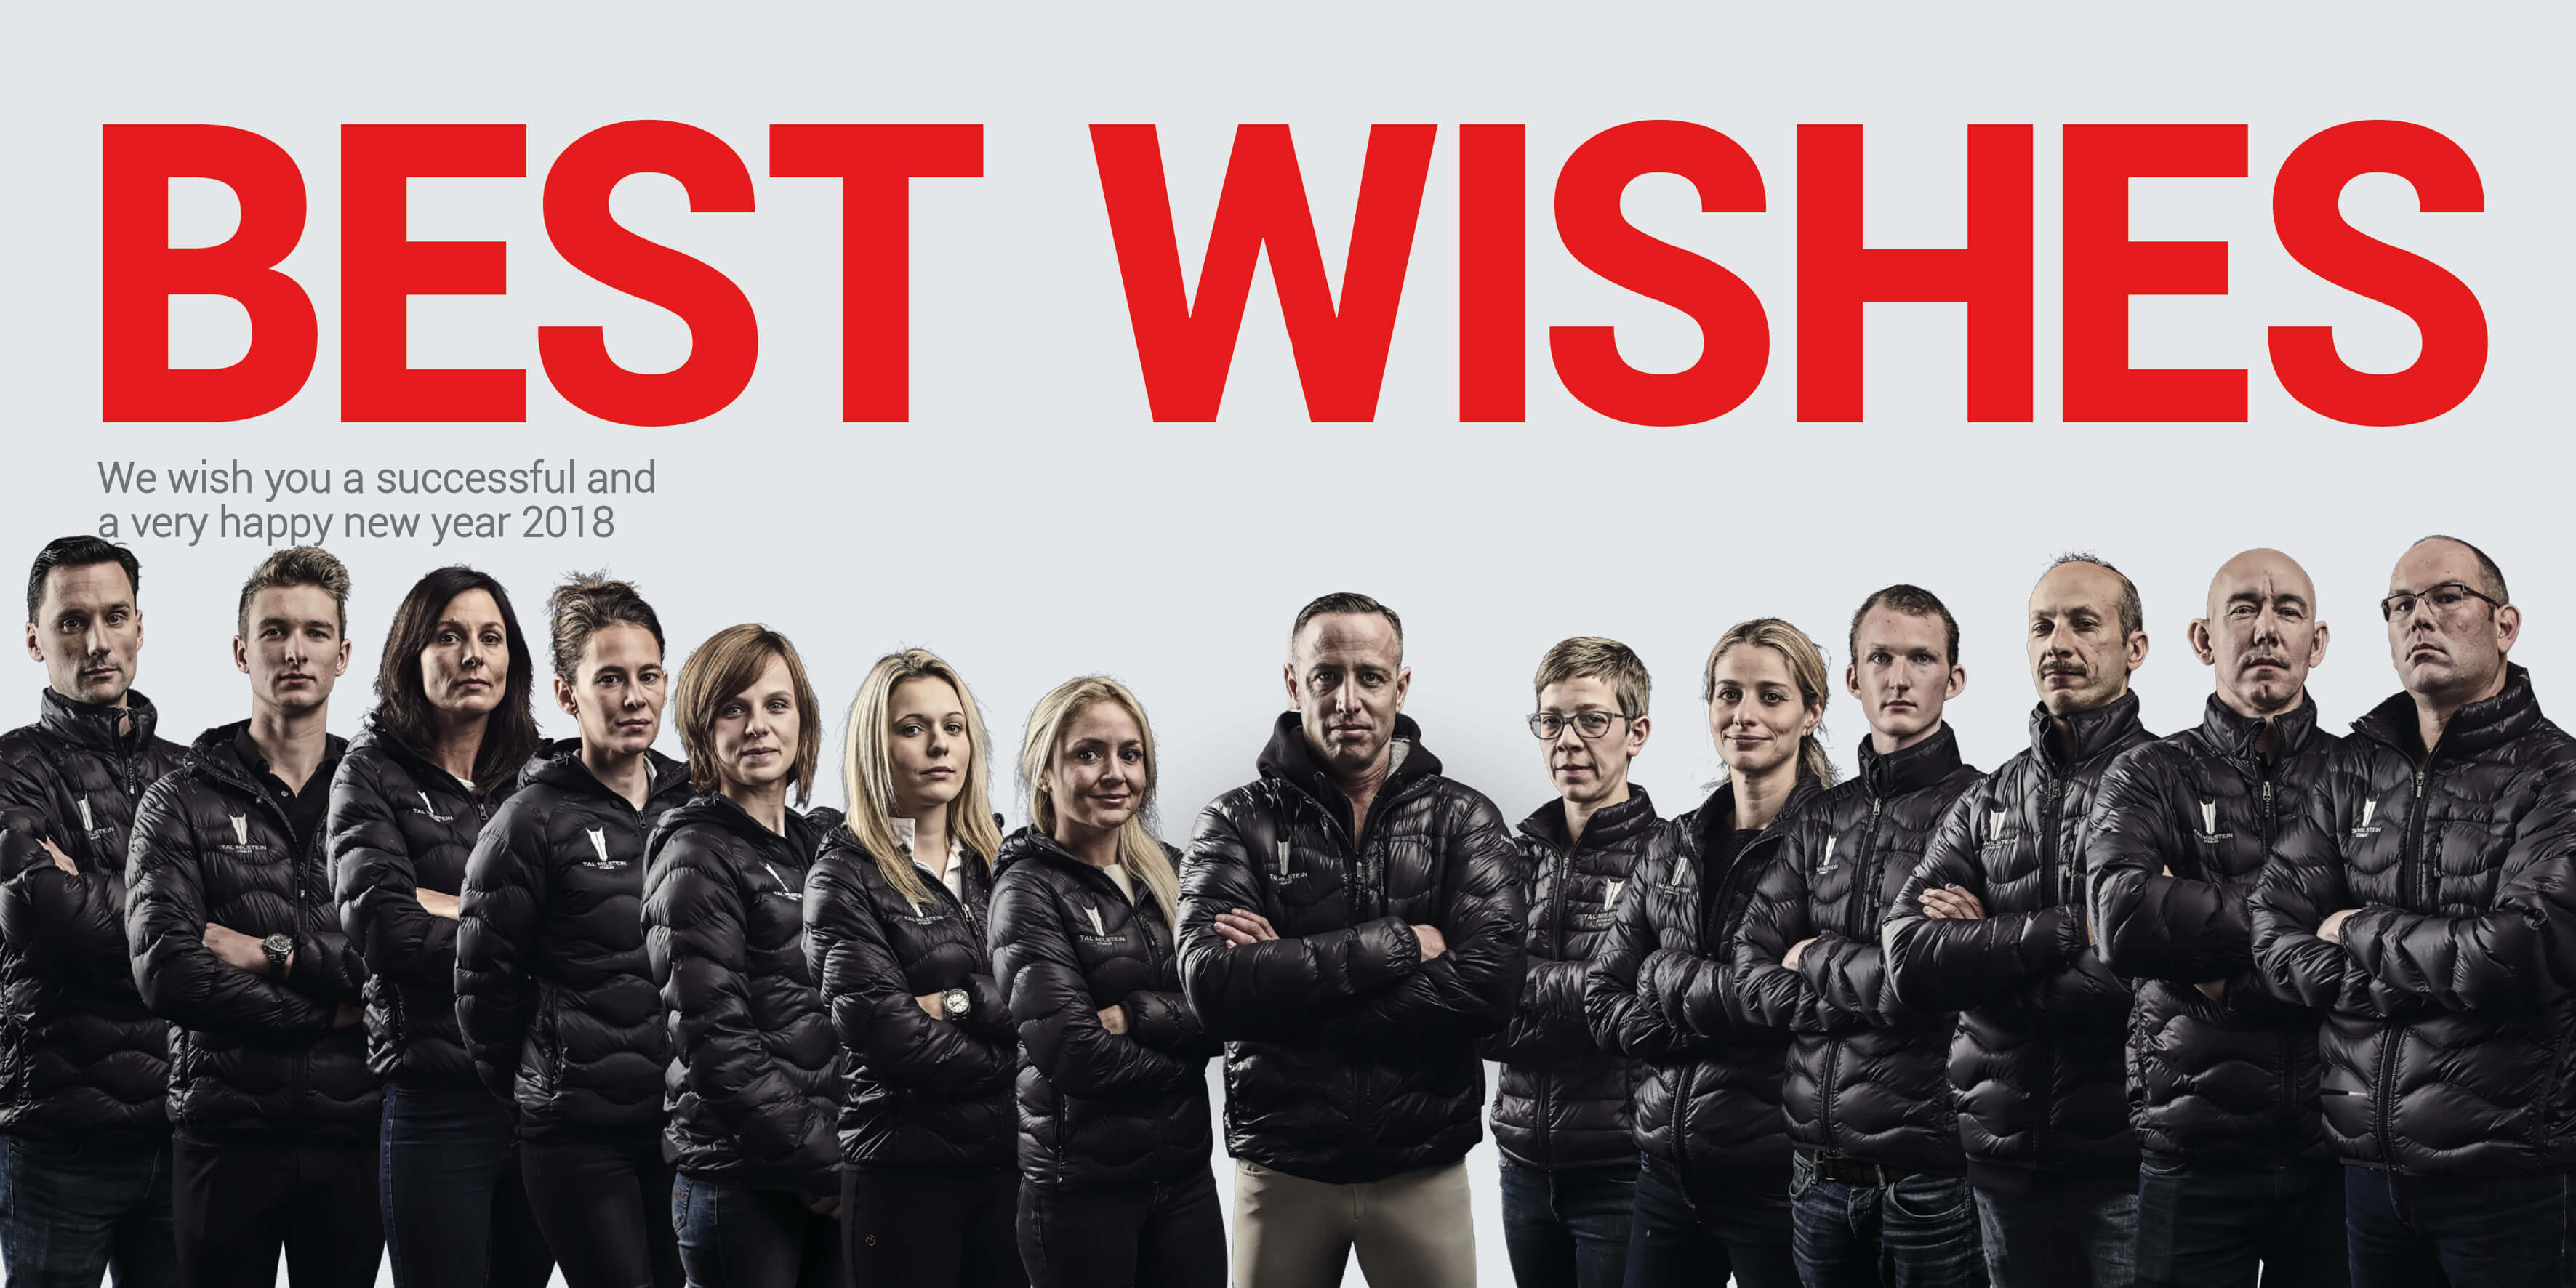 Tal Milstein Stables team wishes you a very happy New Year!